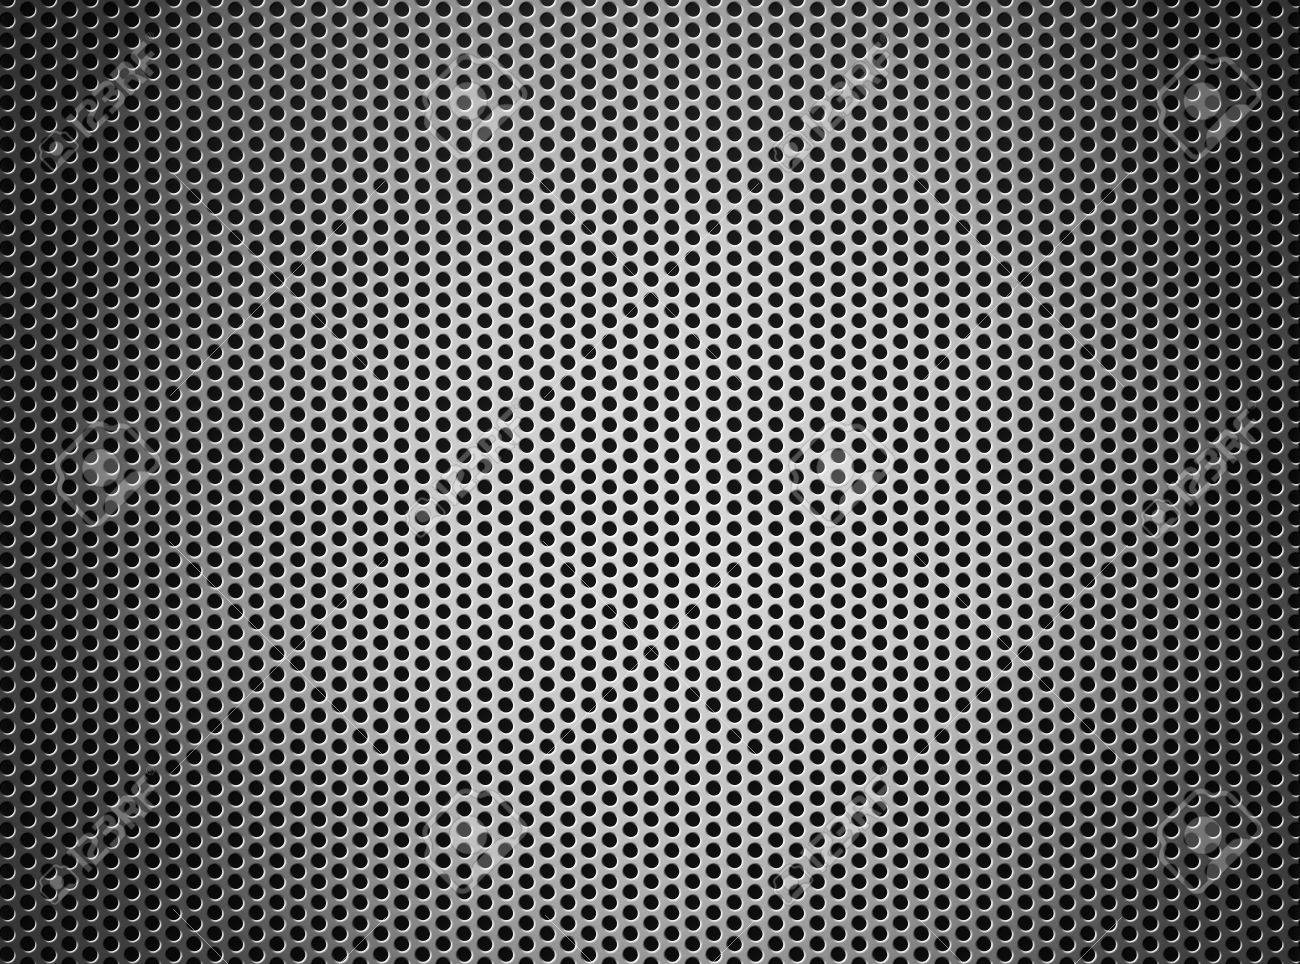 silver metal grate background Stock Photo - 9540281